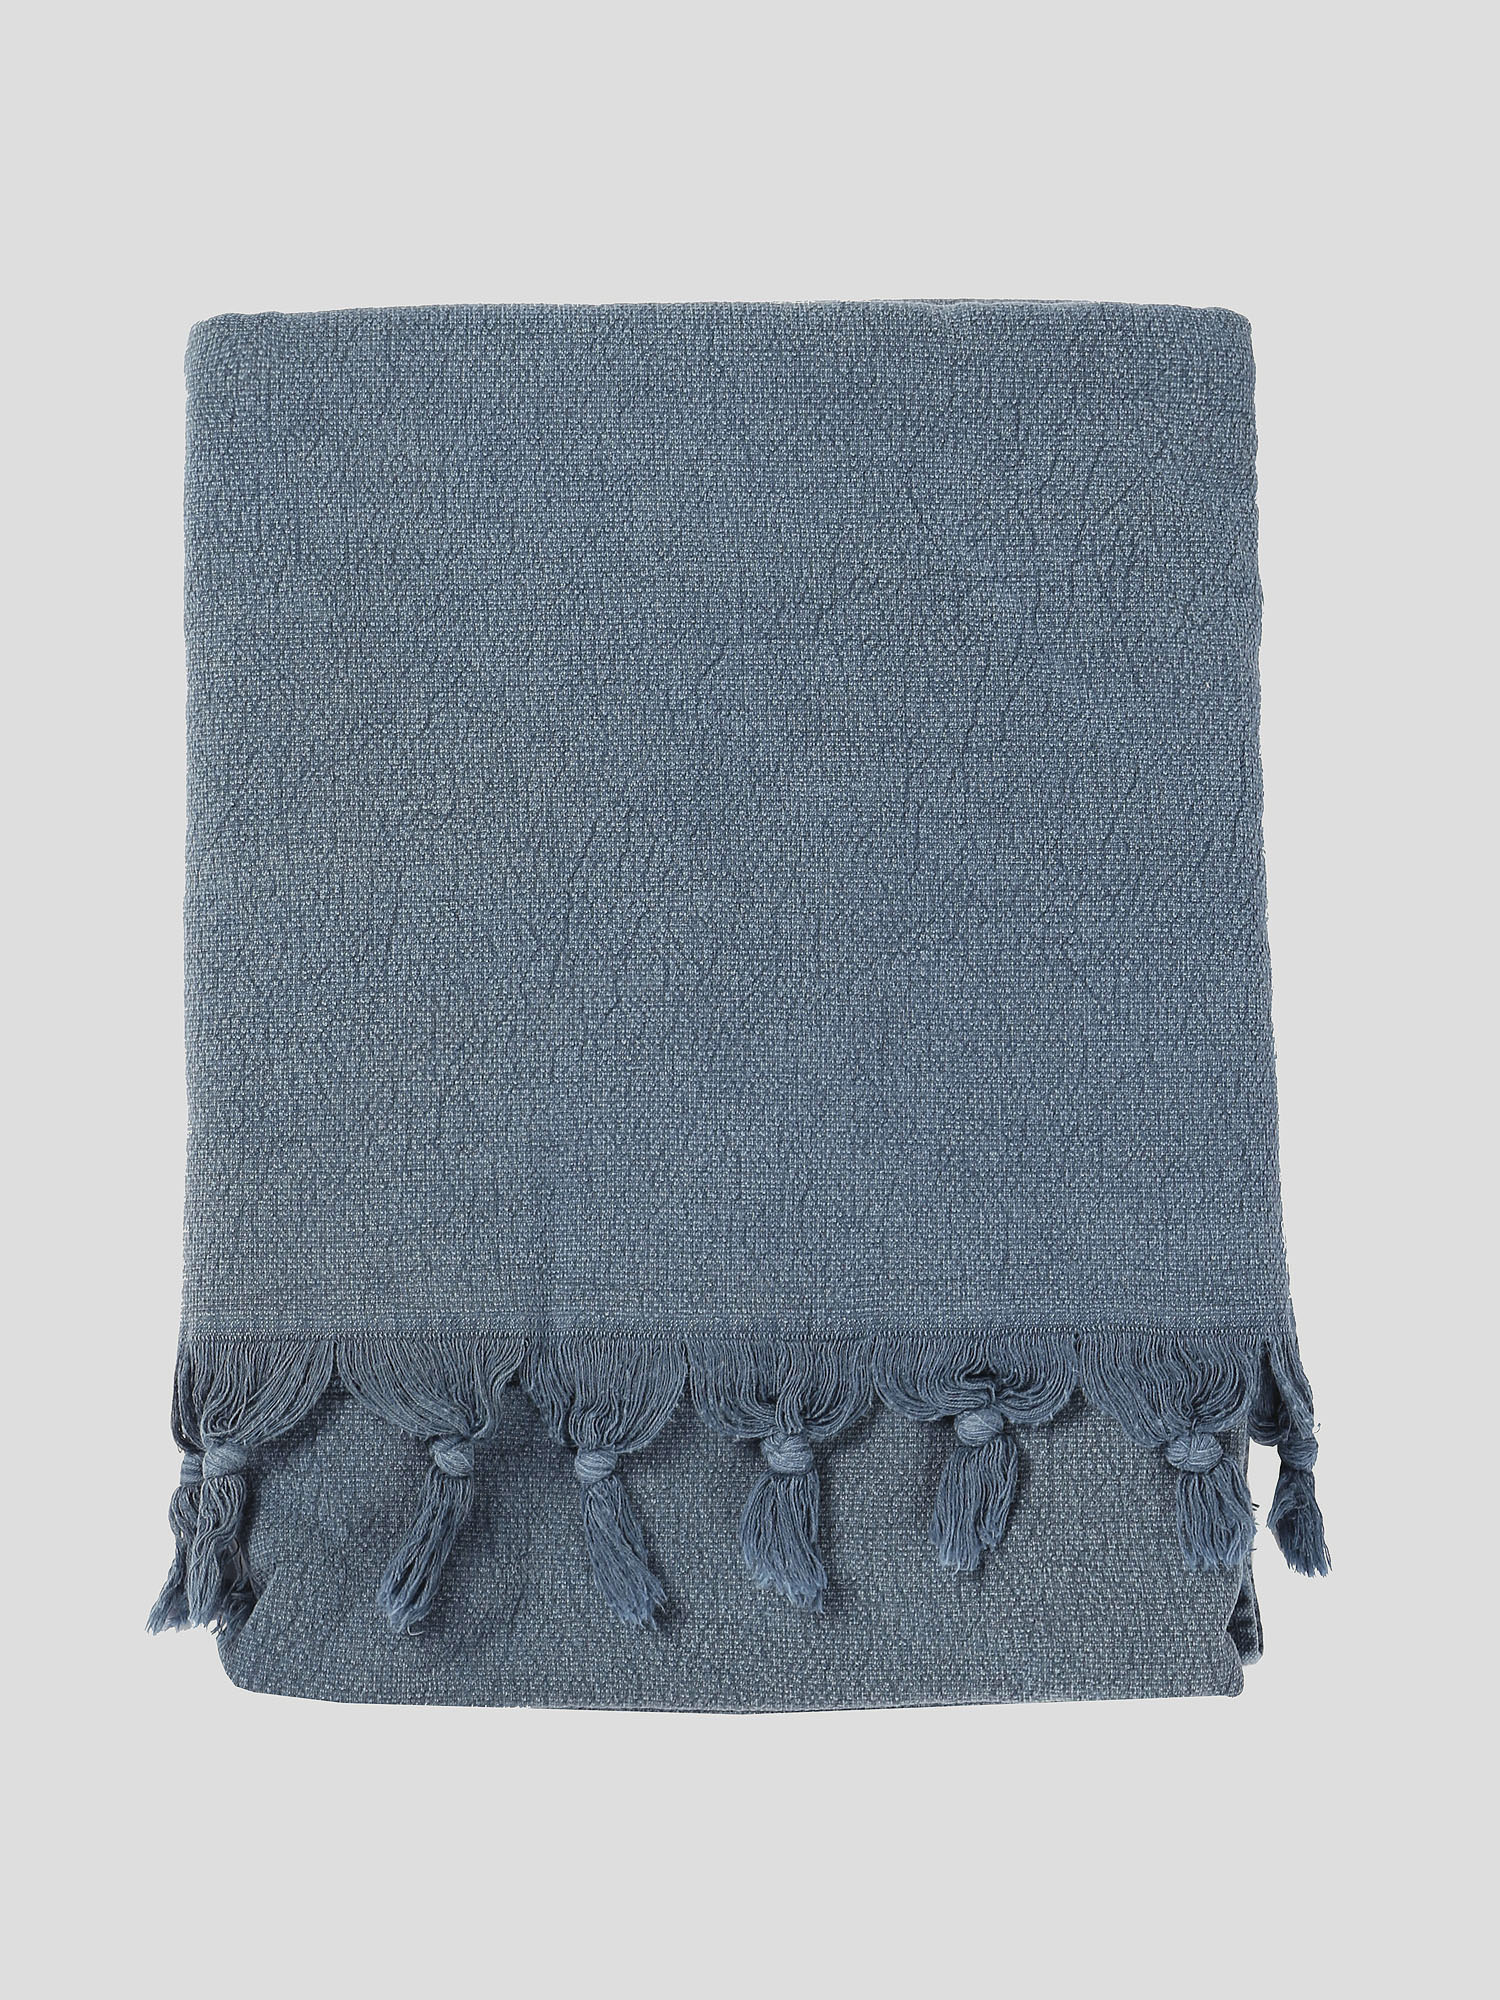 Diesel - 72356 SOFT DENIM,  - Bath - Image 1